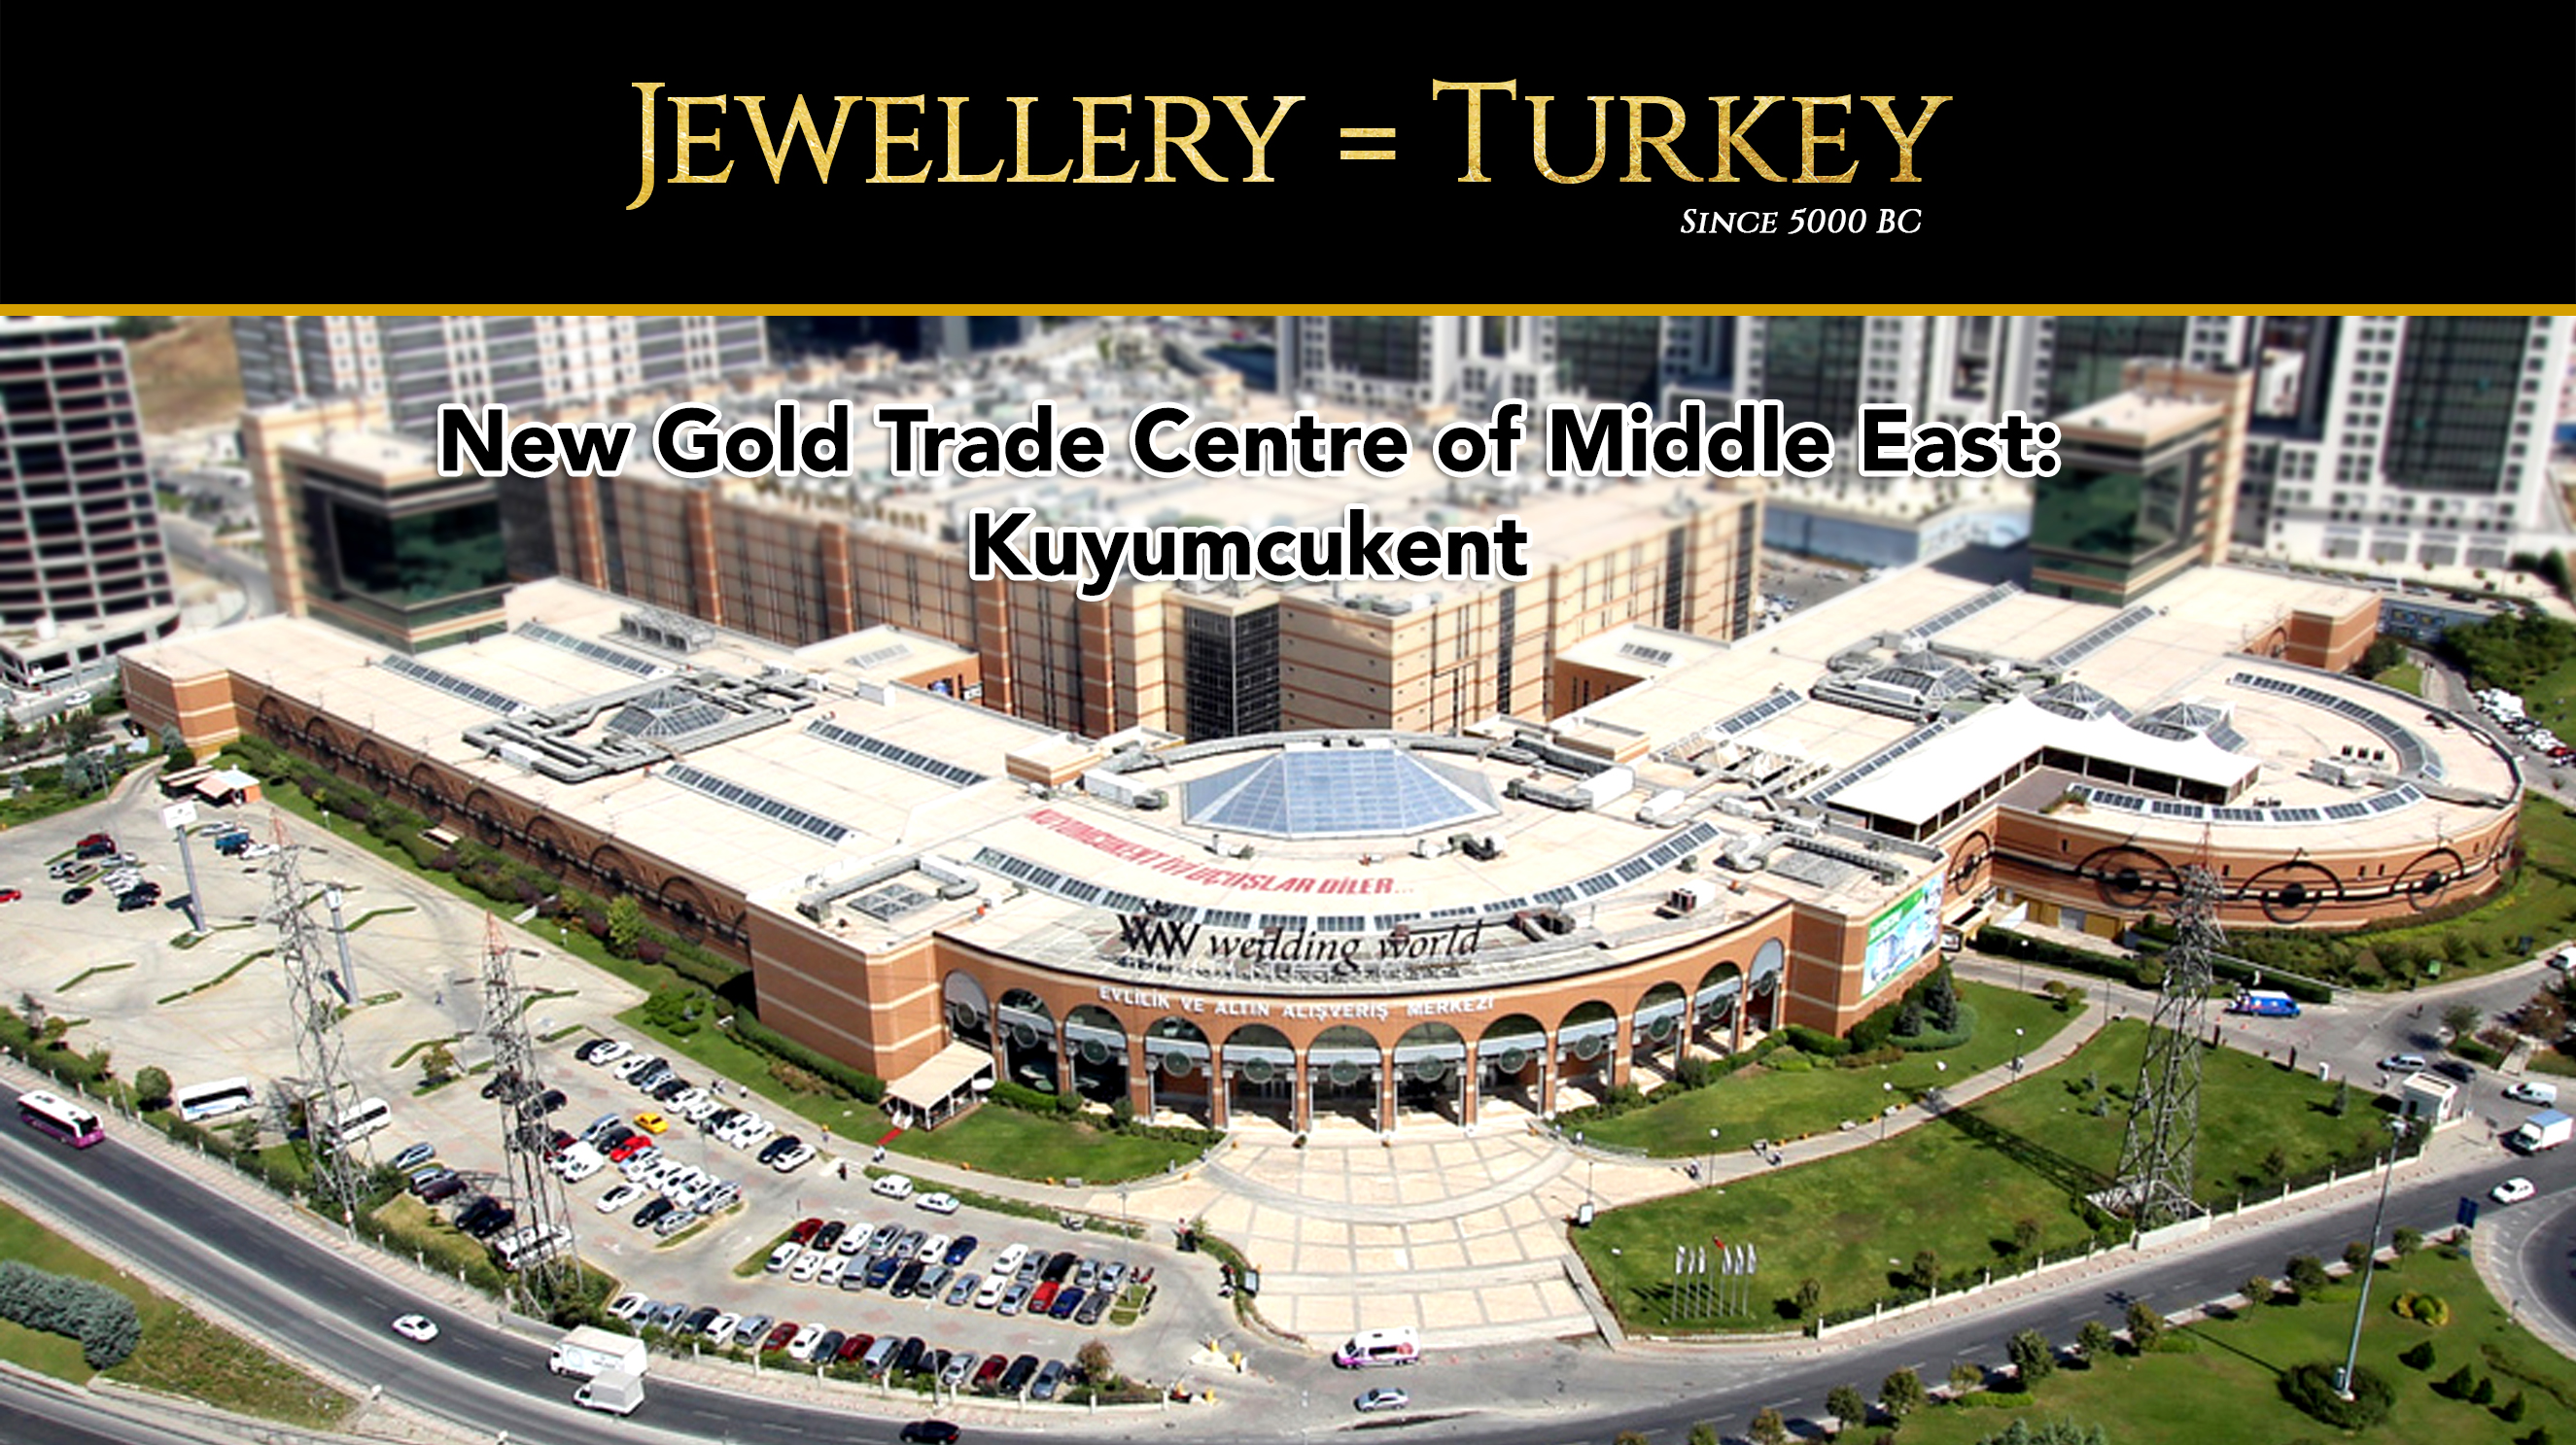 JTR - New Gold Trade Center of Middle East: Kuyumcukent